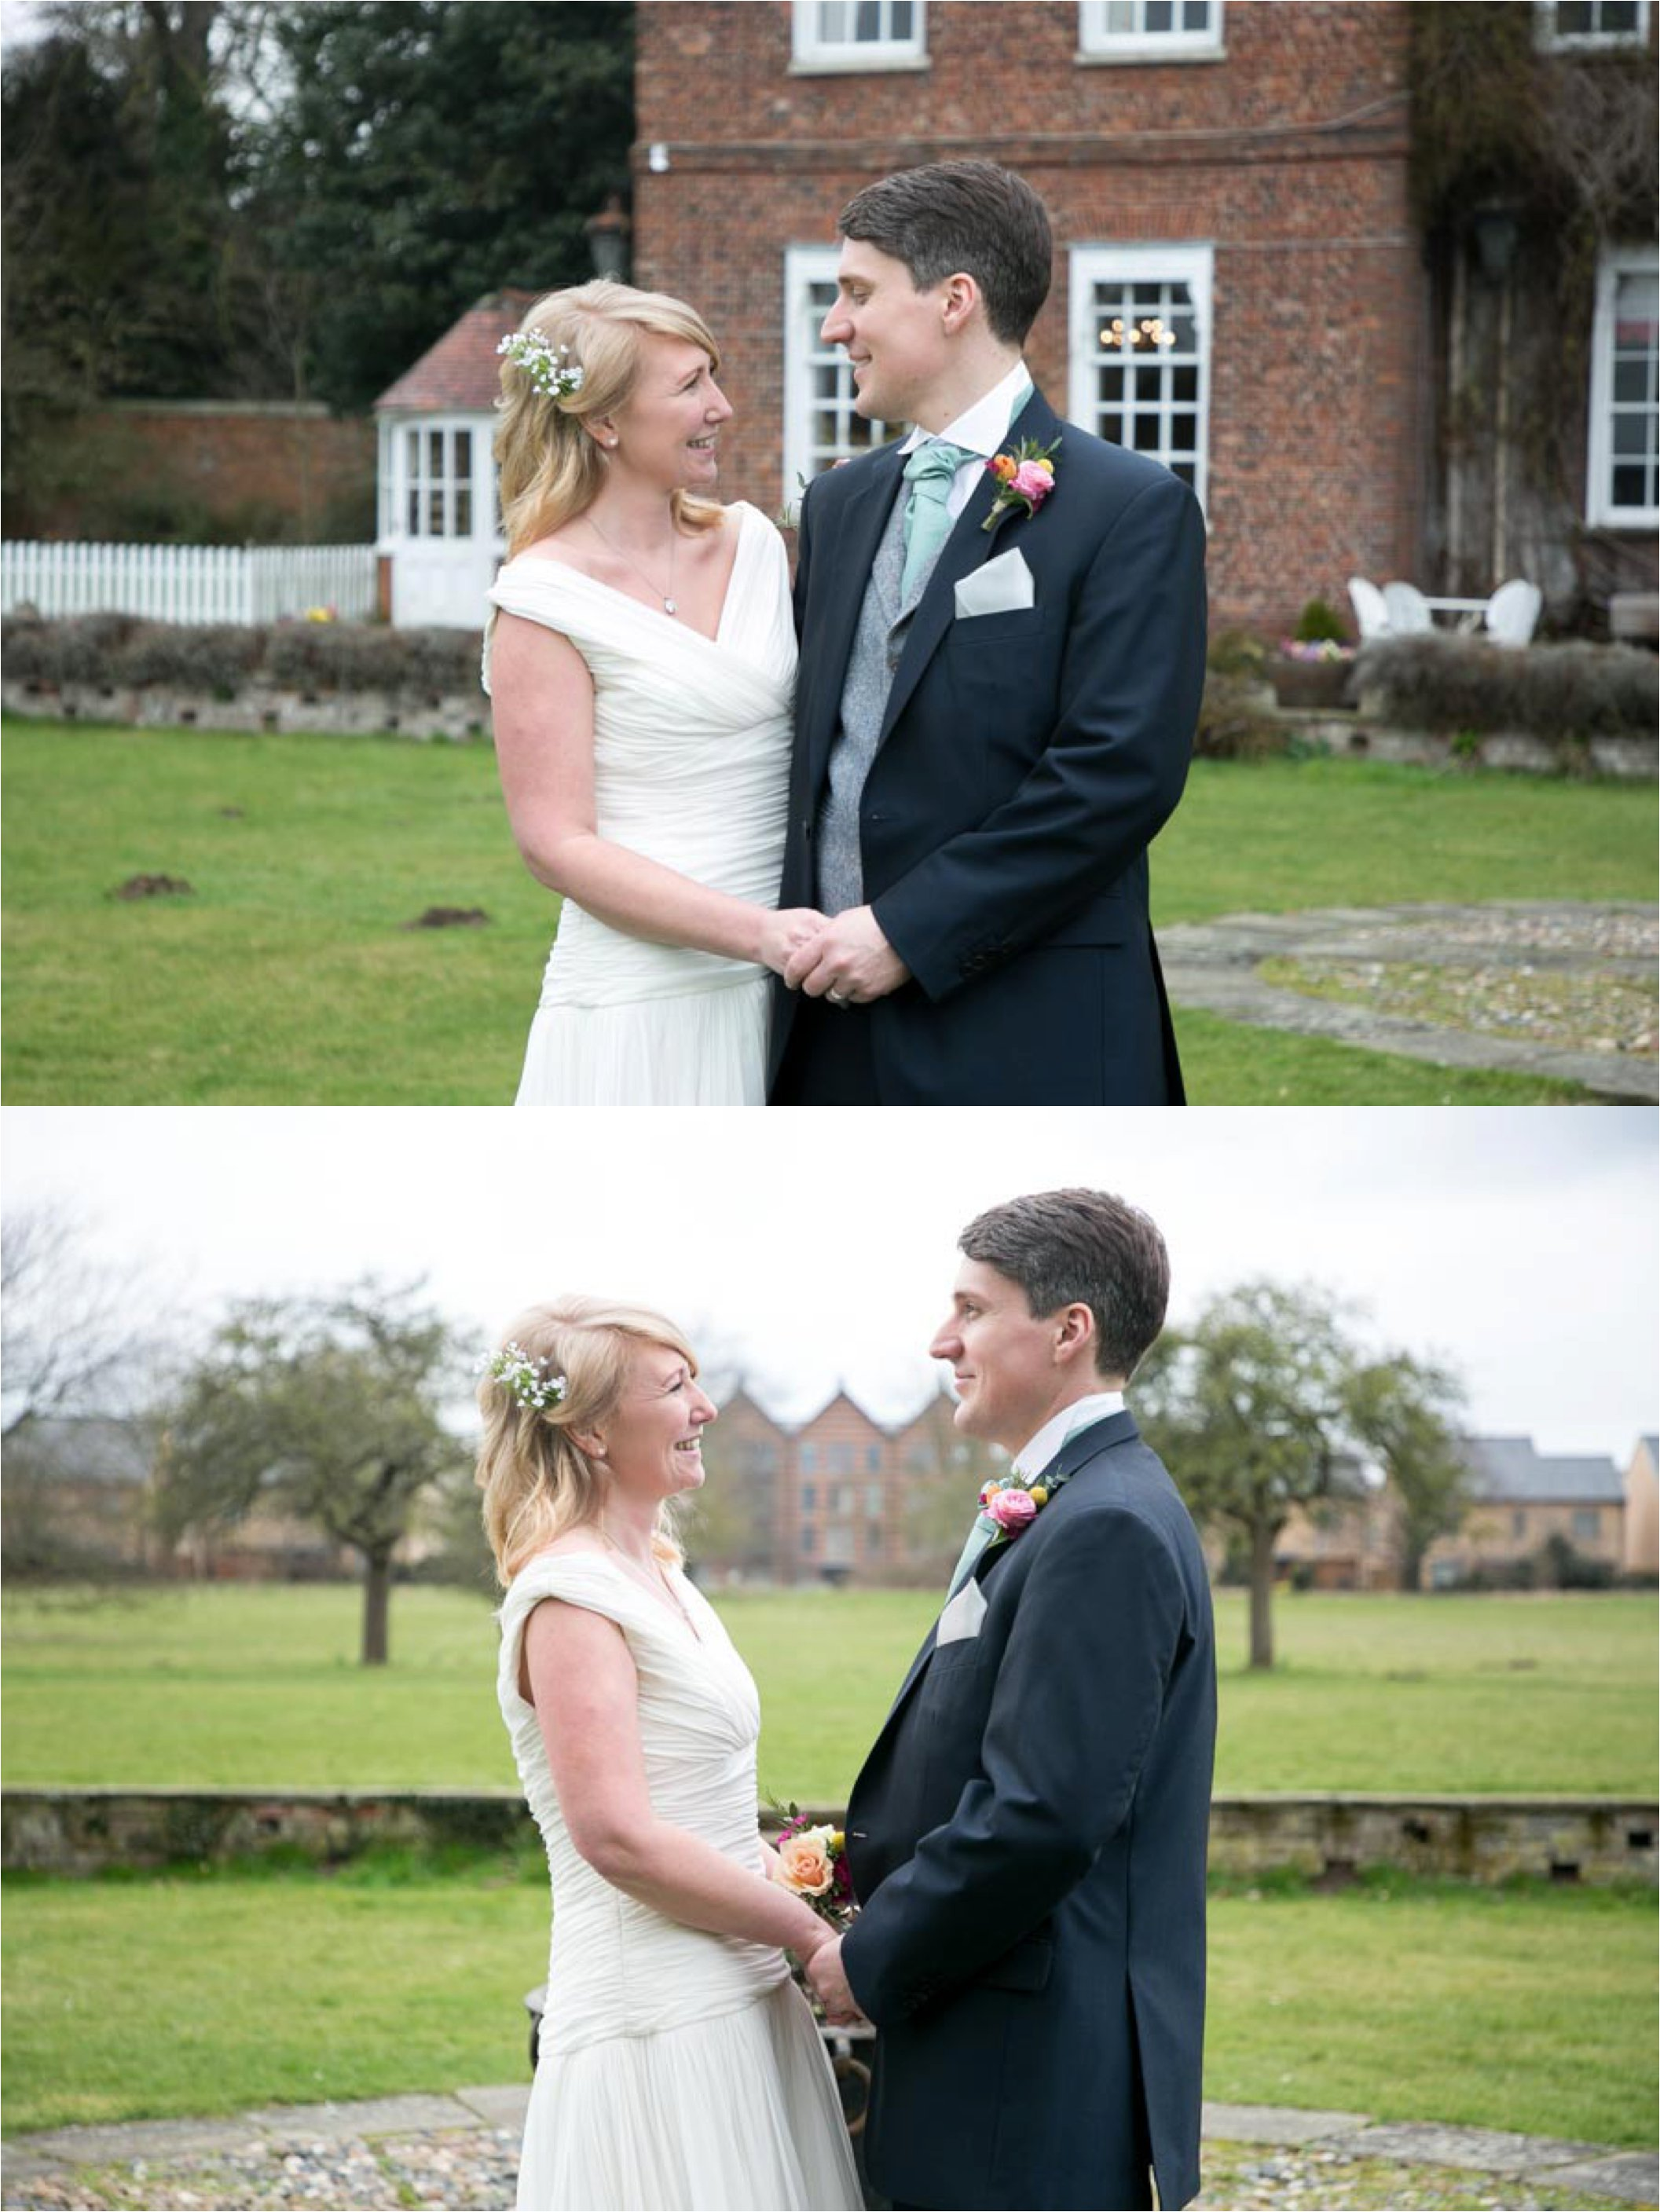 informal wedding photography at anstey hall cambridge